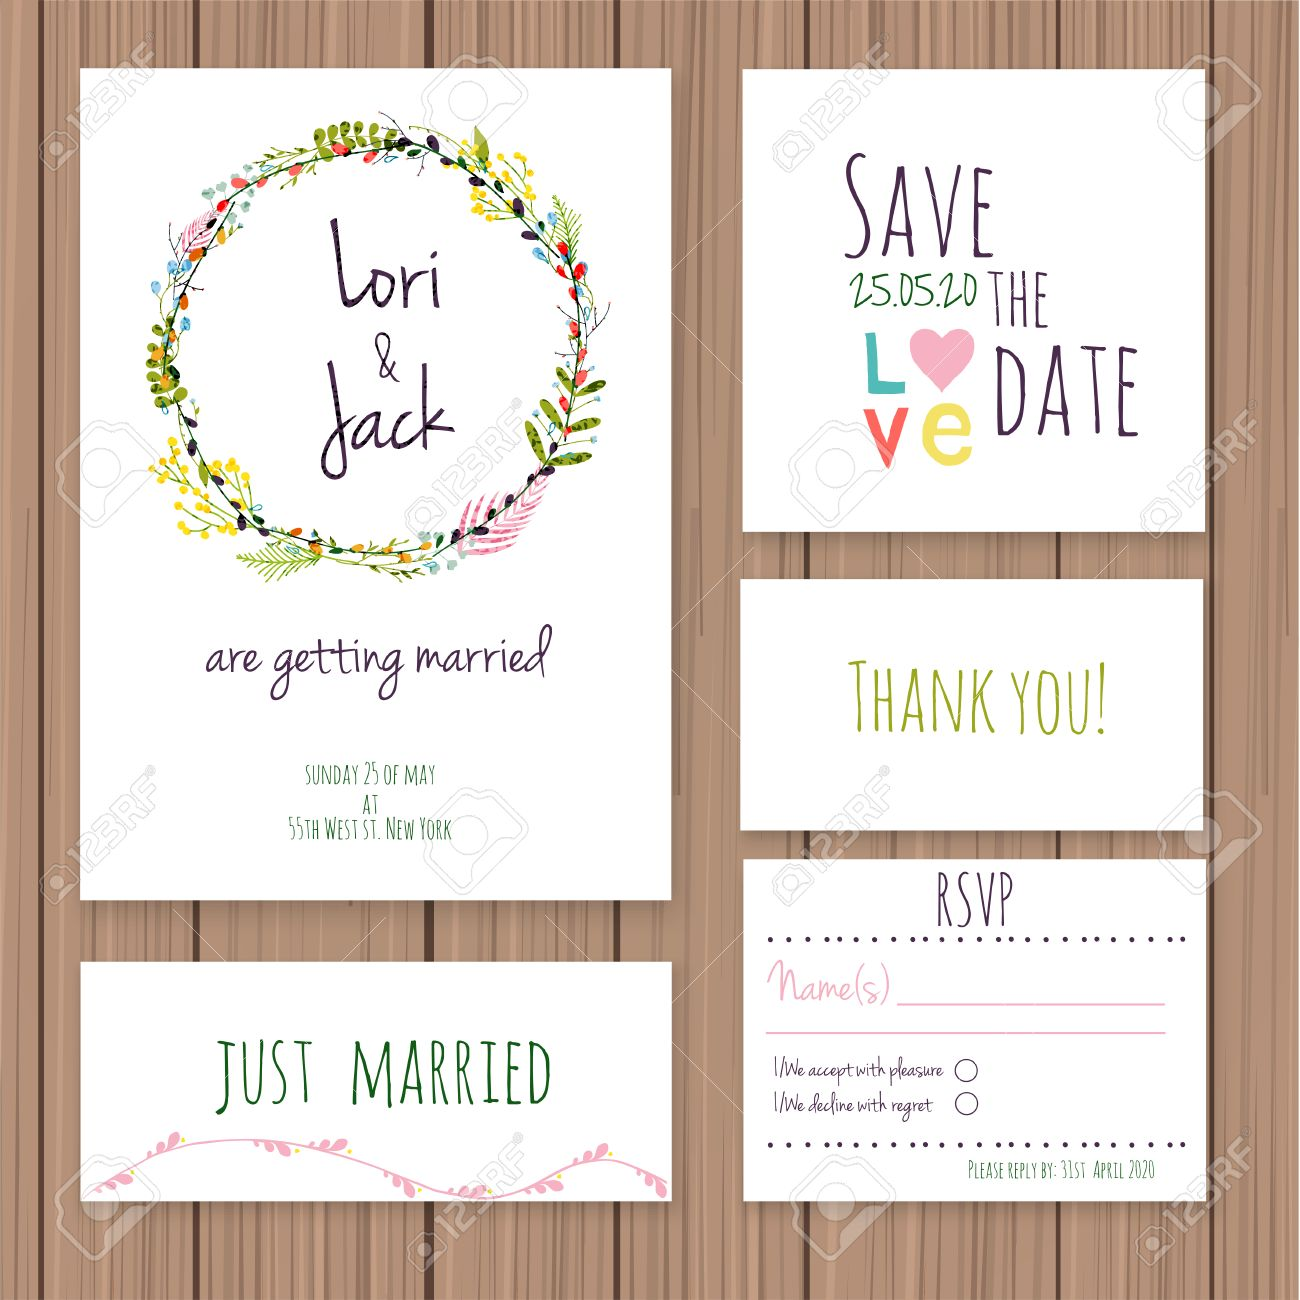 Wedding Invitation Card Set. Thank You Card, Save The Date Cards, RSVP Card